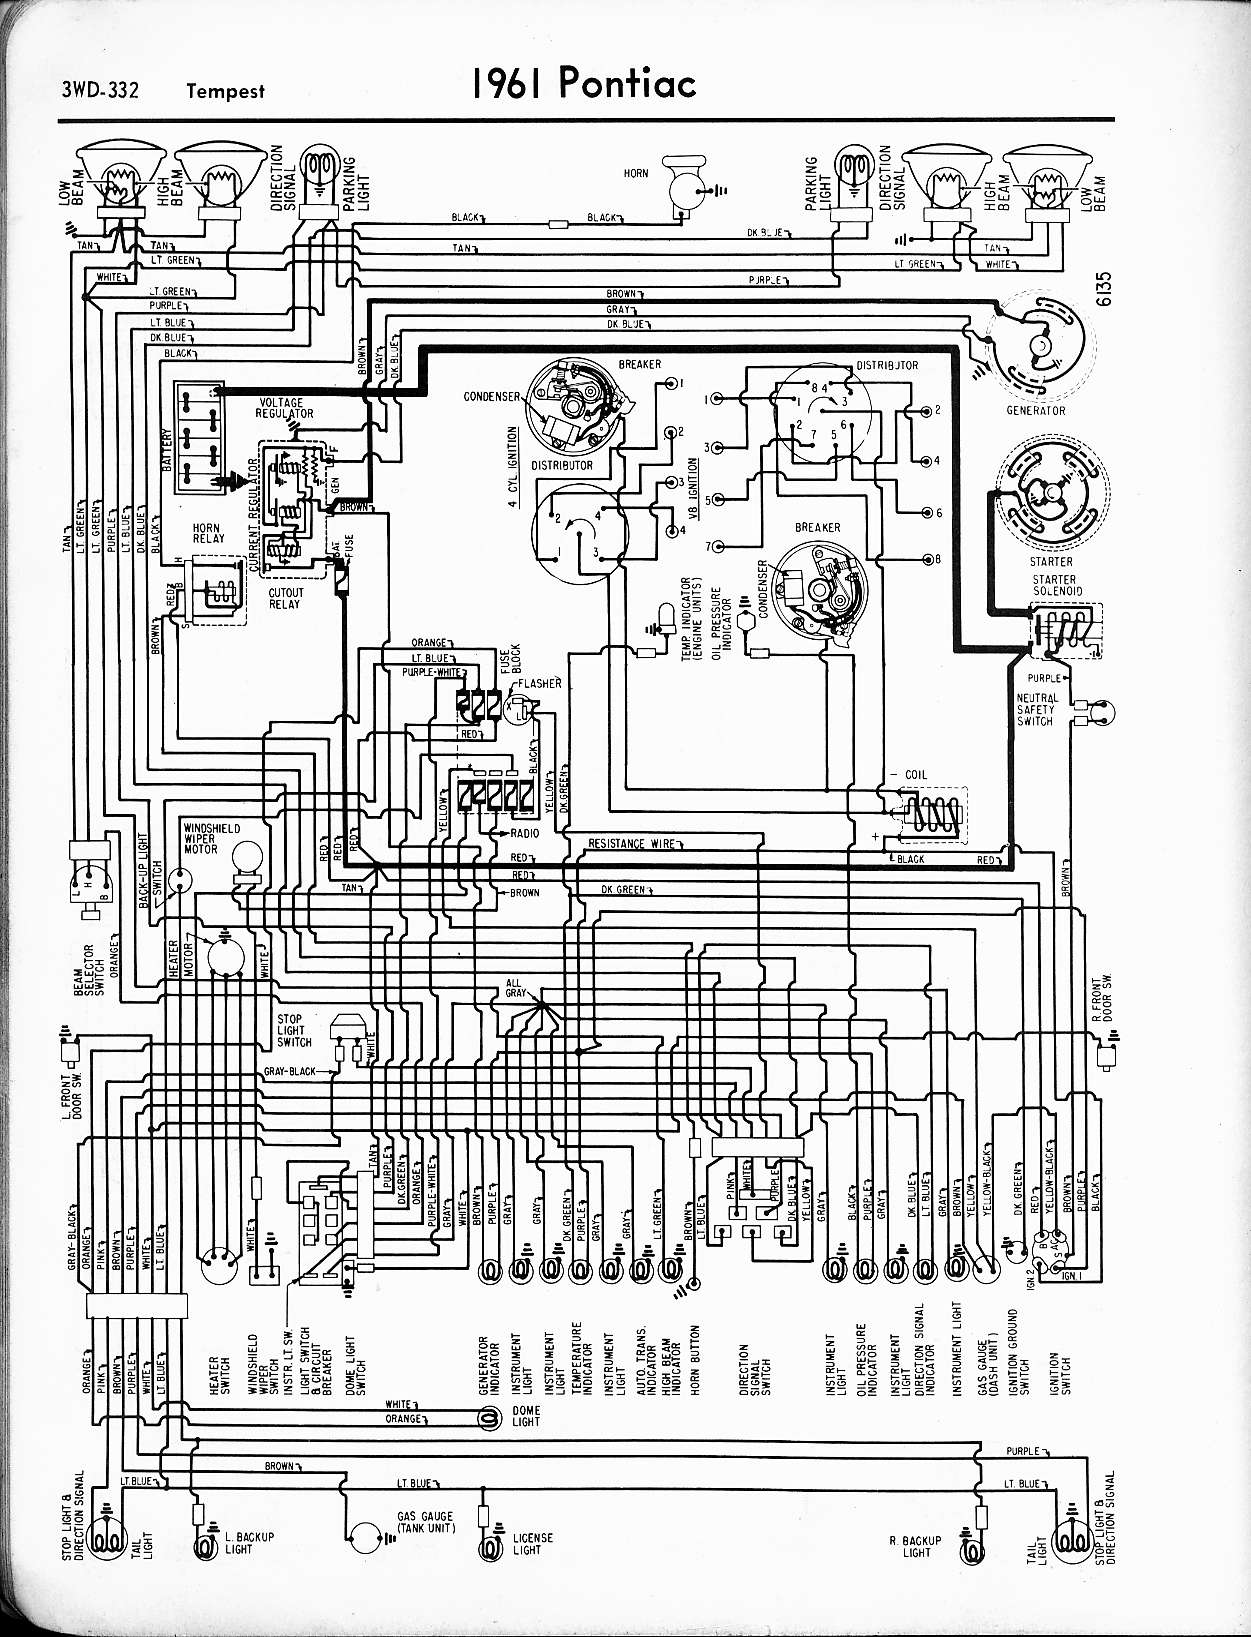 wallace racing - wiring diagrams, Wiring diagram